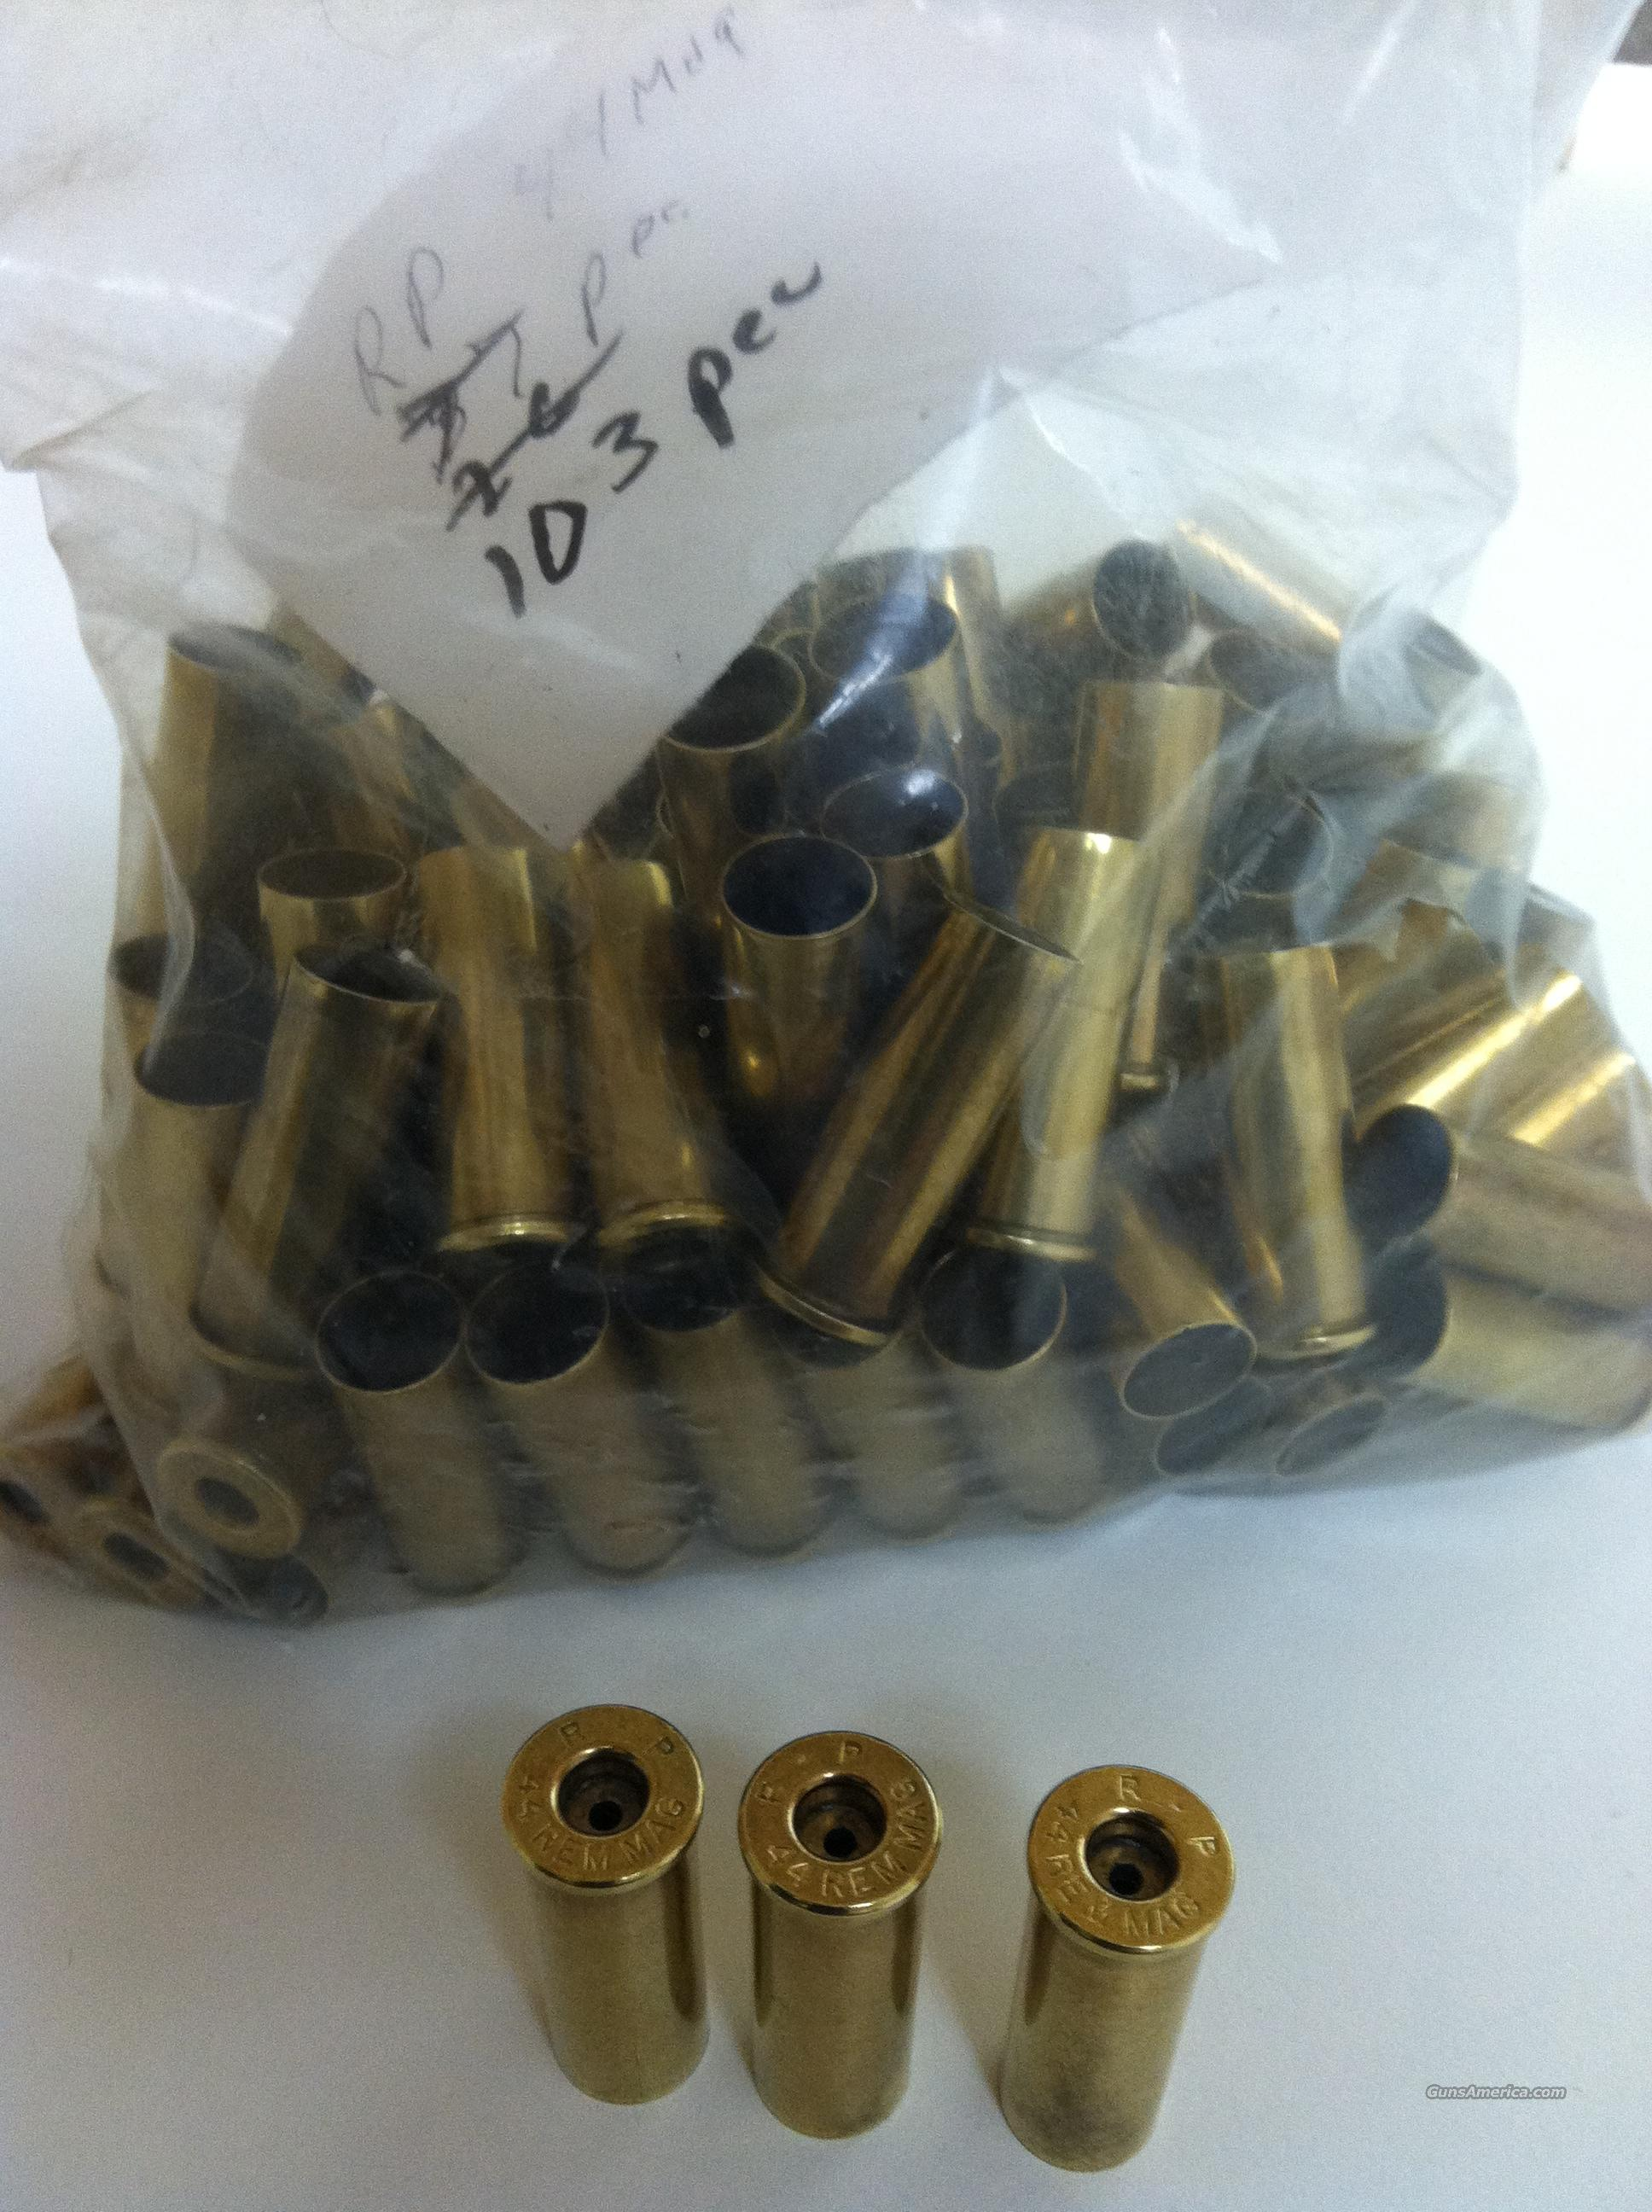 100 44 Mag Rem Pistol Brass for Reloading: Cleaned and Deprimed - Like New! - Mixed Cleaned Deprimed 44 Remington Magnum Brass  Non-Guns > Reloading > Components > Brass